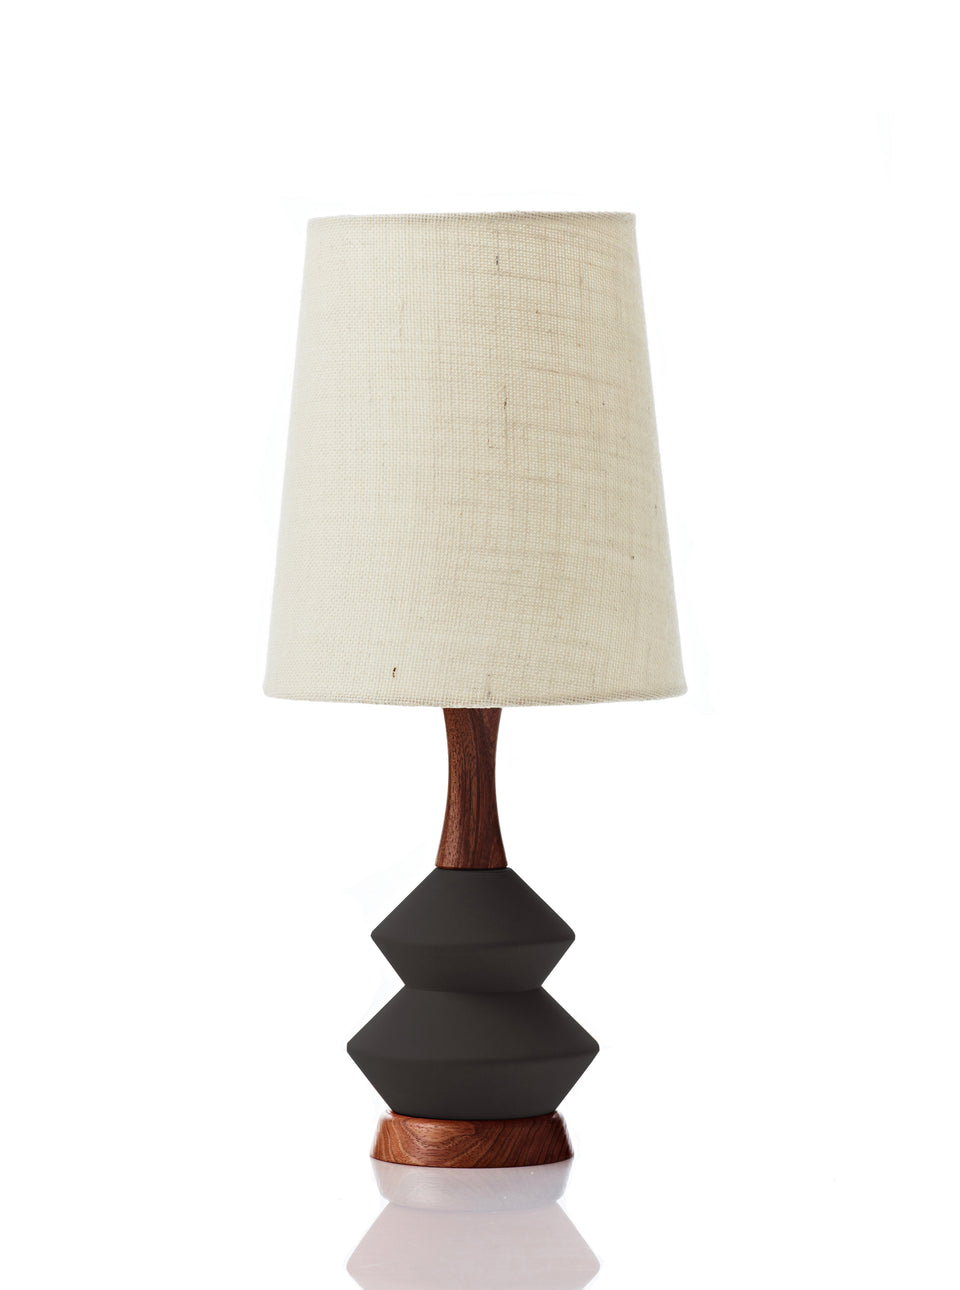 Athena Lamp • Small - Vanilla Hessian